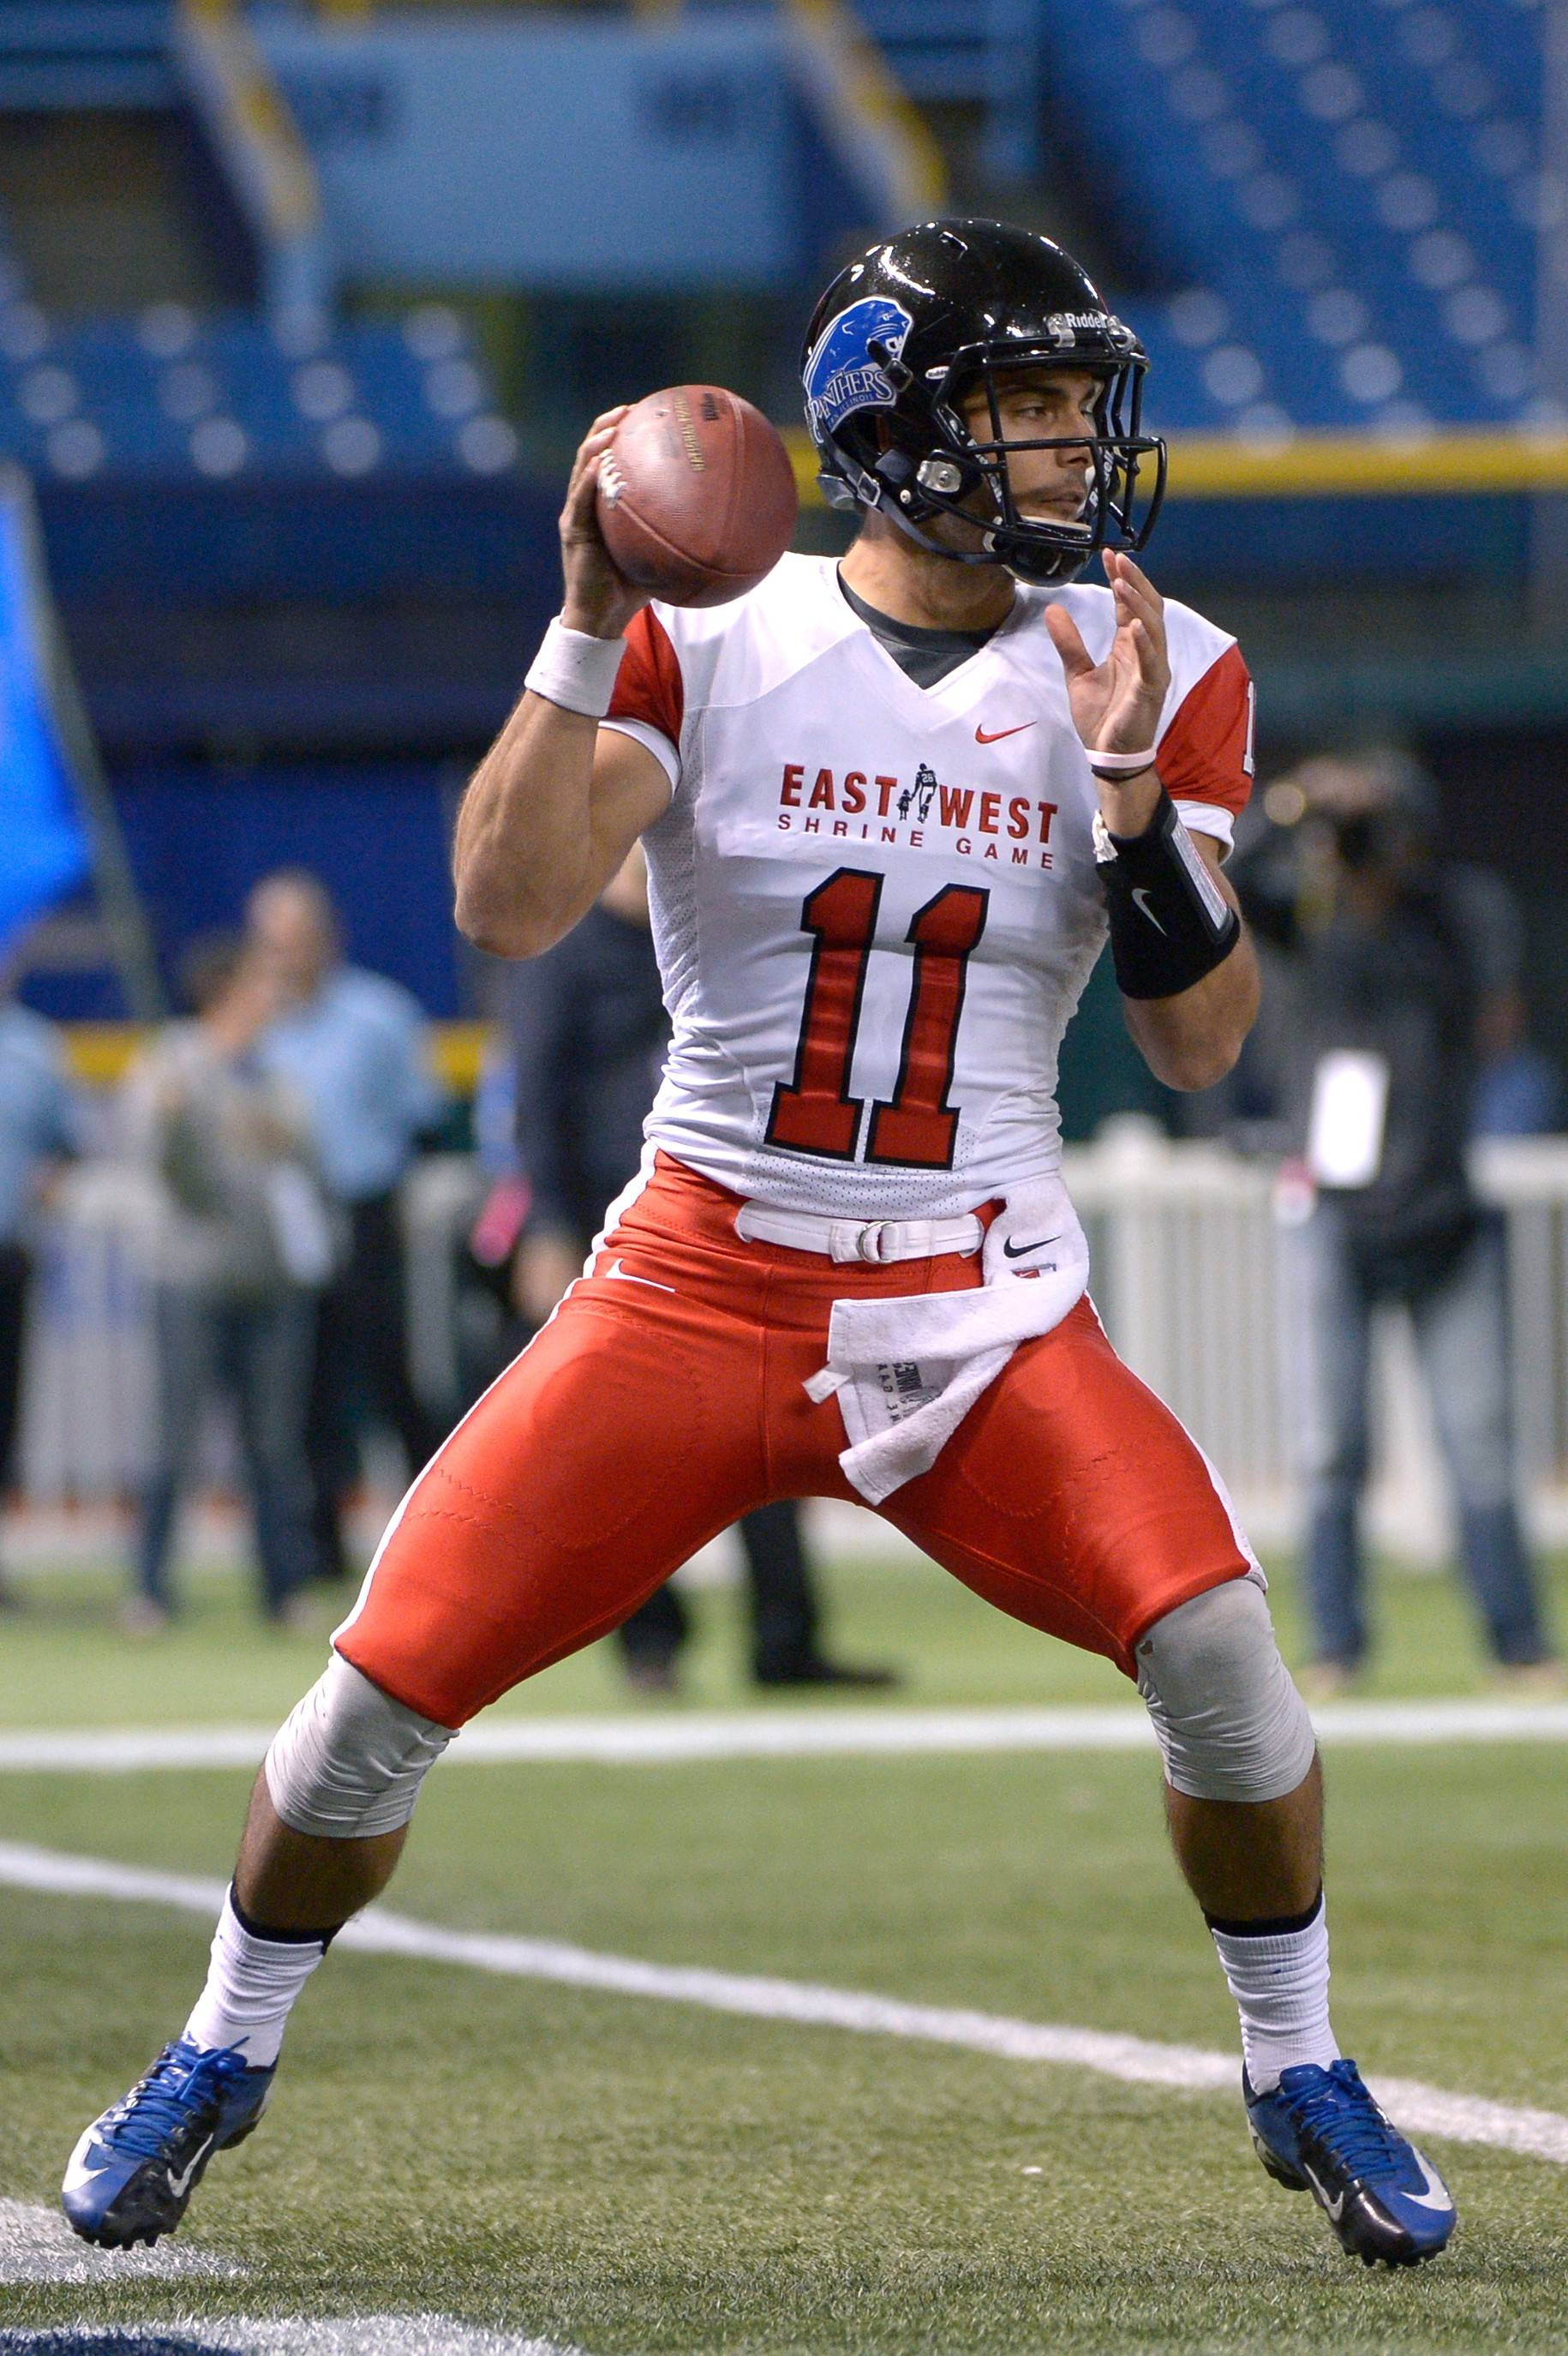 East quarterback Jimmy Garoppolo sets up to throw a pass during the second half of the East-West Shrine Classic in St. Petersburg, Fla. The East won 23-13 and Garoppolo was named the offensive MVP.